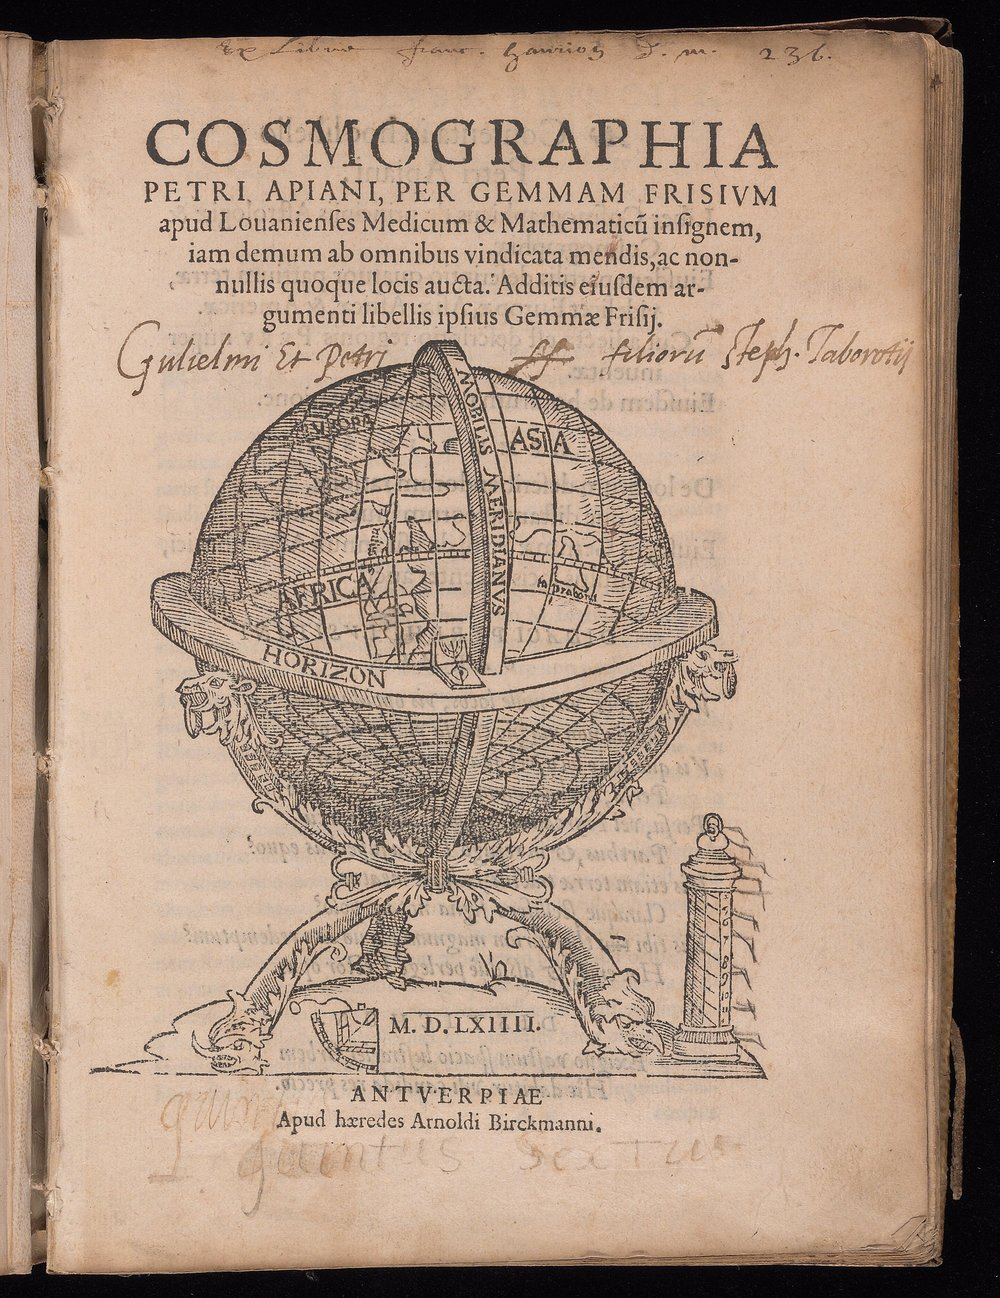 From Peter Apian & Gemma Frisius,  Cosmographia Petri Apiani  (Antwerp, 1564).  Courtesy of the  Beinecke Rare Book and Manuscript Library.   Appears:  Writing